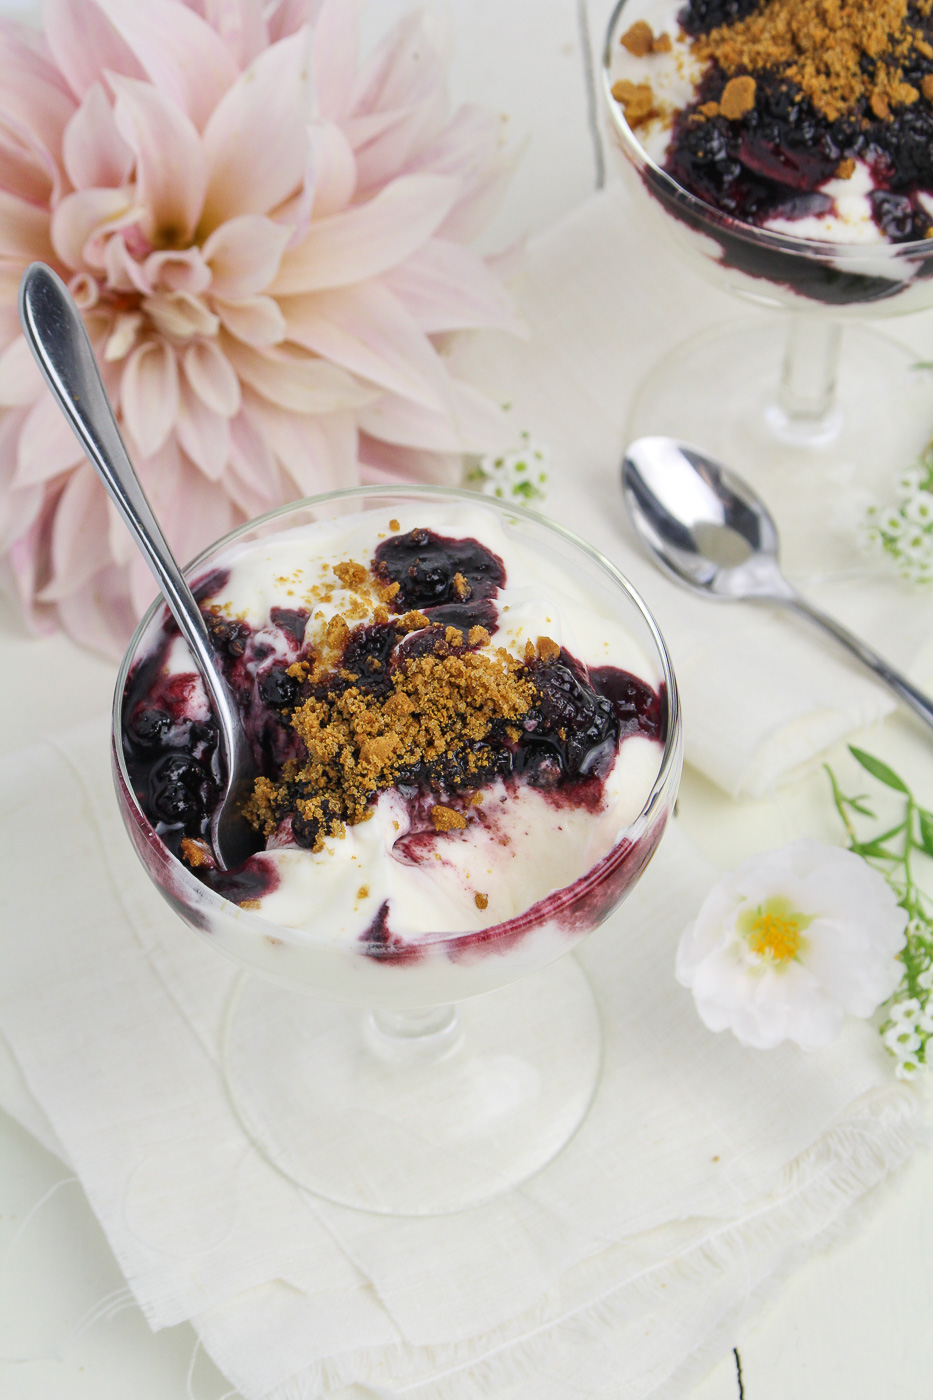 Skyr Mousse with Wild Blueberries and Gingerbread Crumbs {Katie at the Kitchen Door}